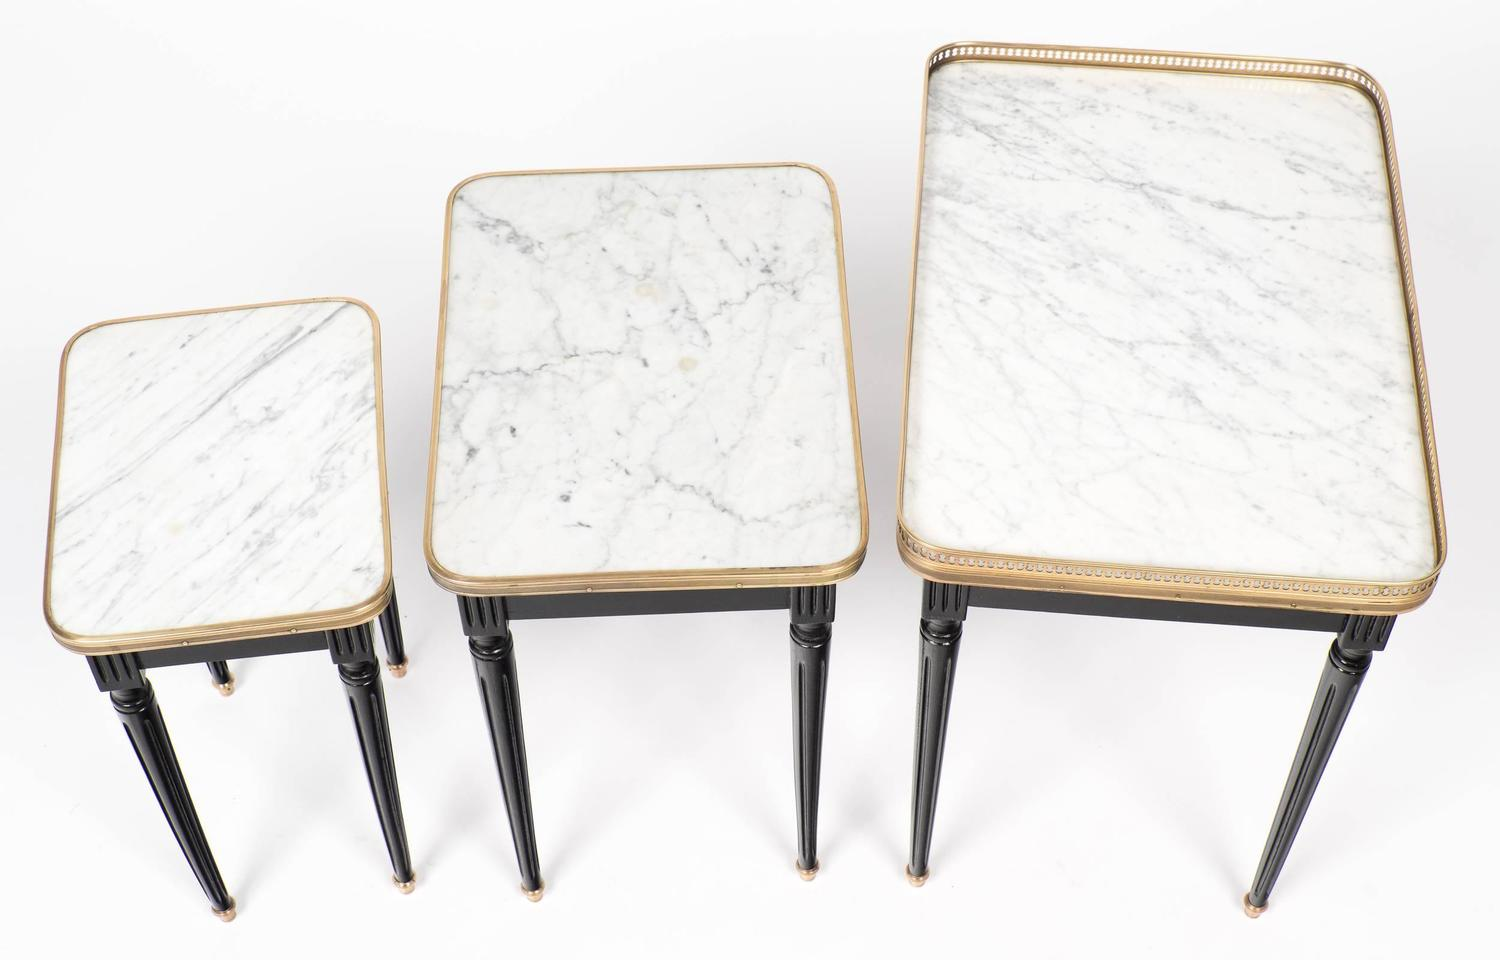 Antique Set Of Louis XVI Style Nesting Tables At 1stdibs. Full resolution  portraiture, nominally Width 1500 Height 960 pixels, portraiture with #8E6C3D.